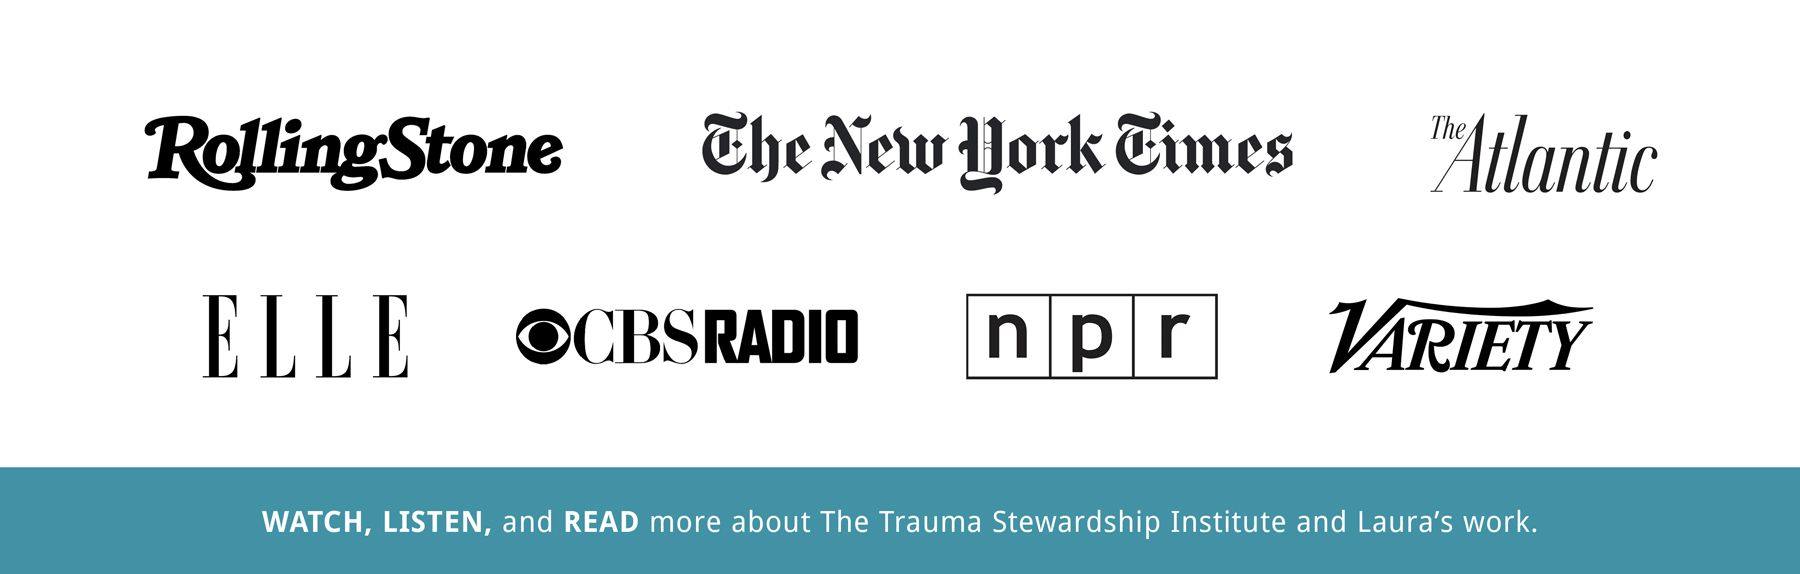 Watch, Listen, and Read more about The Trauma Stewardship Institue and Laura's work in Rolling Stone, The New York Times, The Atlantic, Elle, CBS Radio, NPR, and Variety